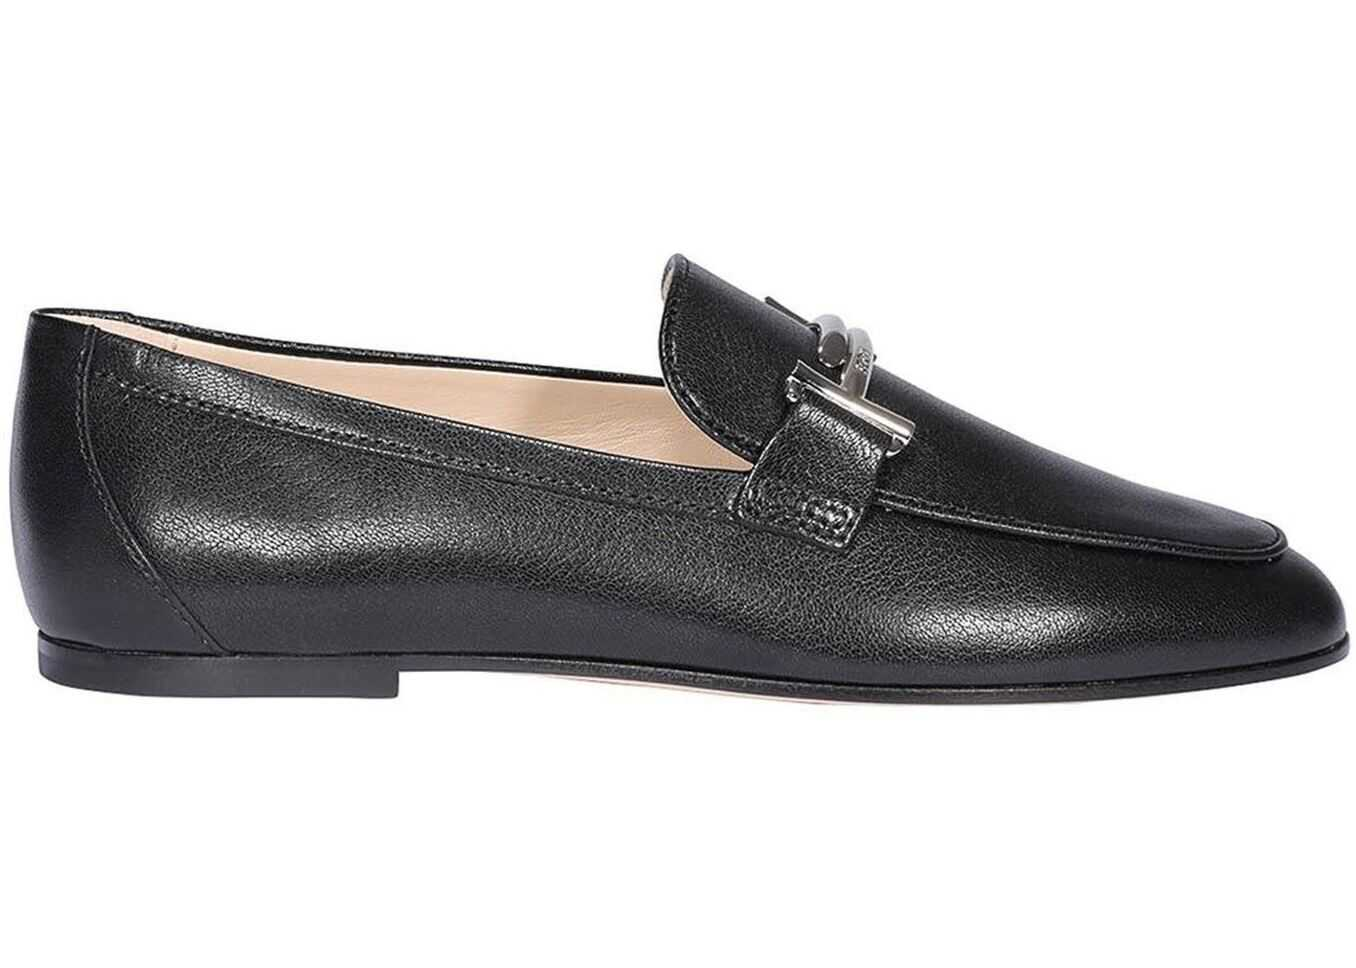 TOD'S Black Calfskin Double T Loafers Black